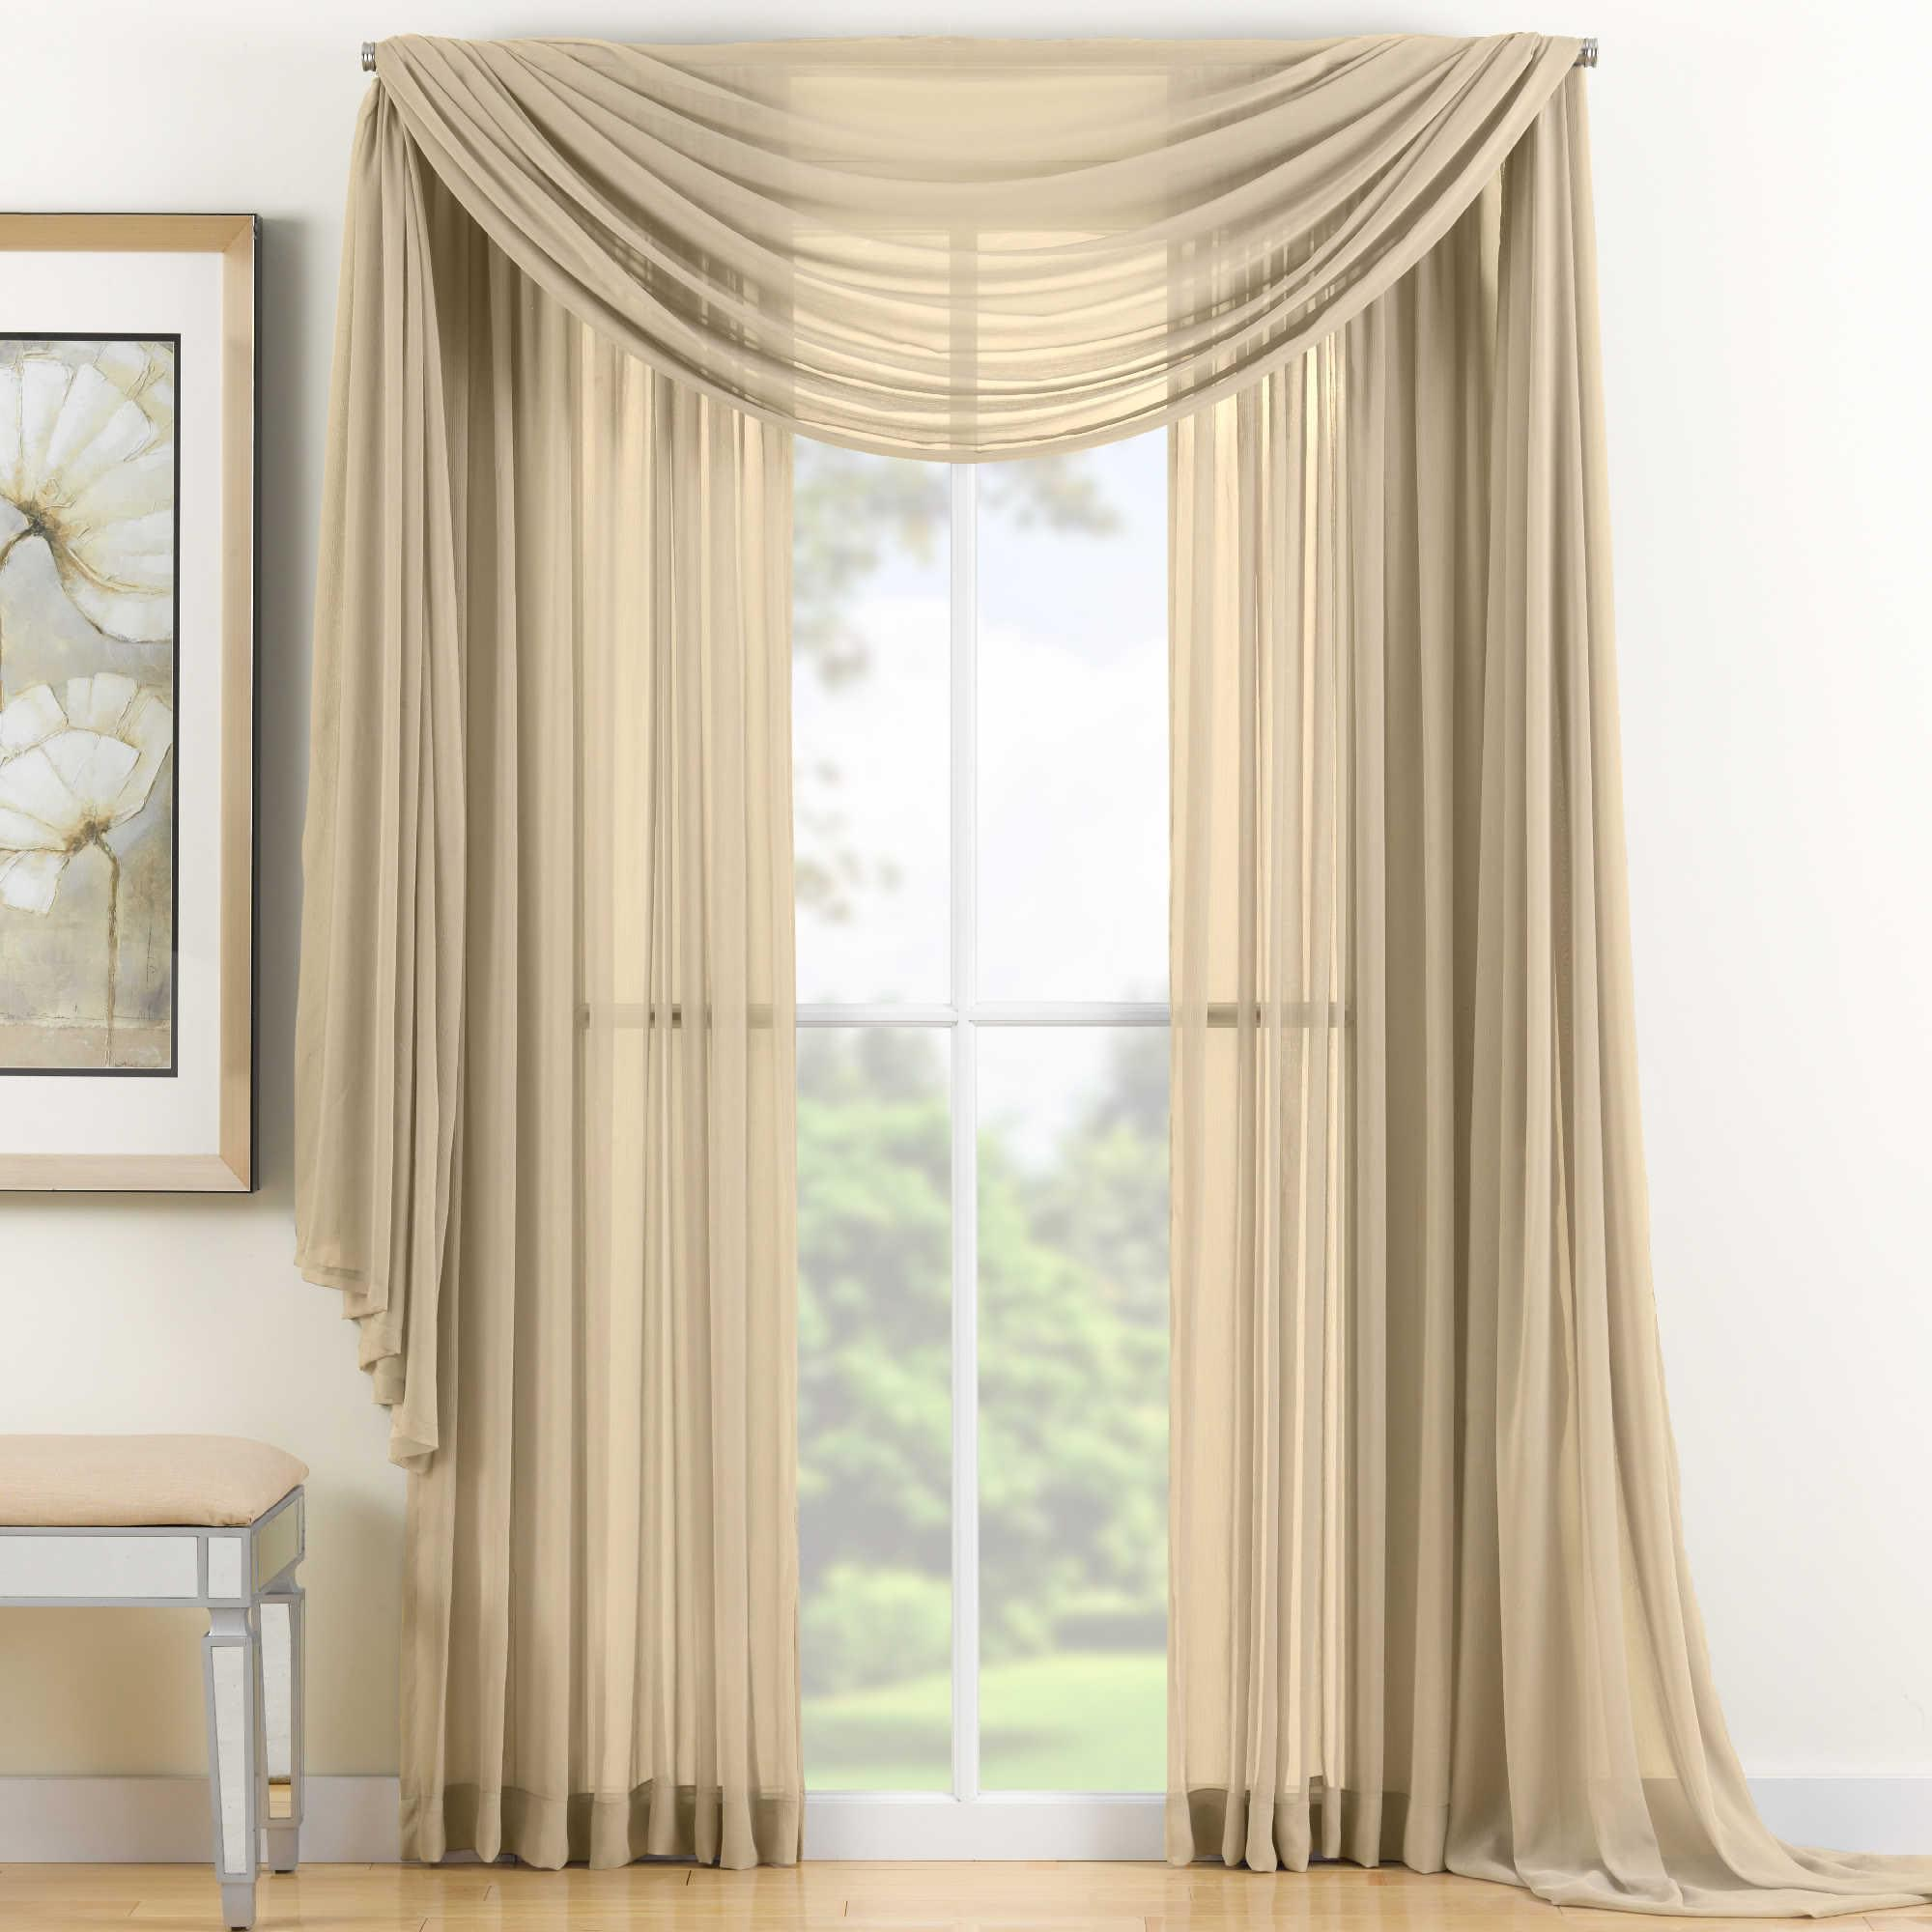 Awesome Sheer Scarf Valance Window Treatments Part - 5: Gold Sheer Scarf Valance